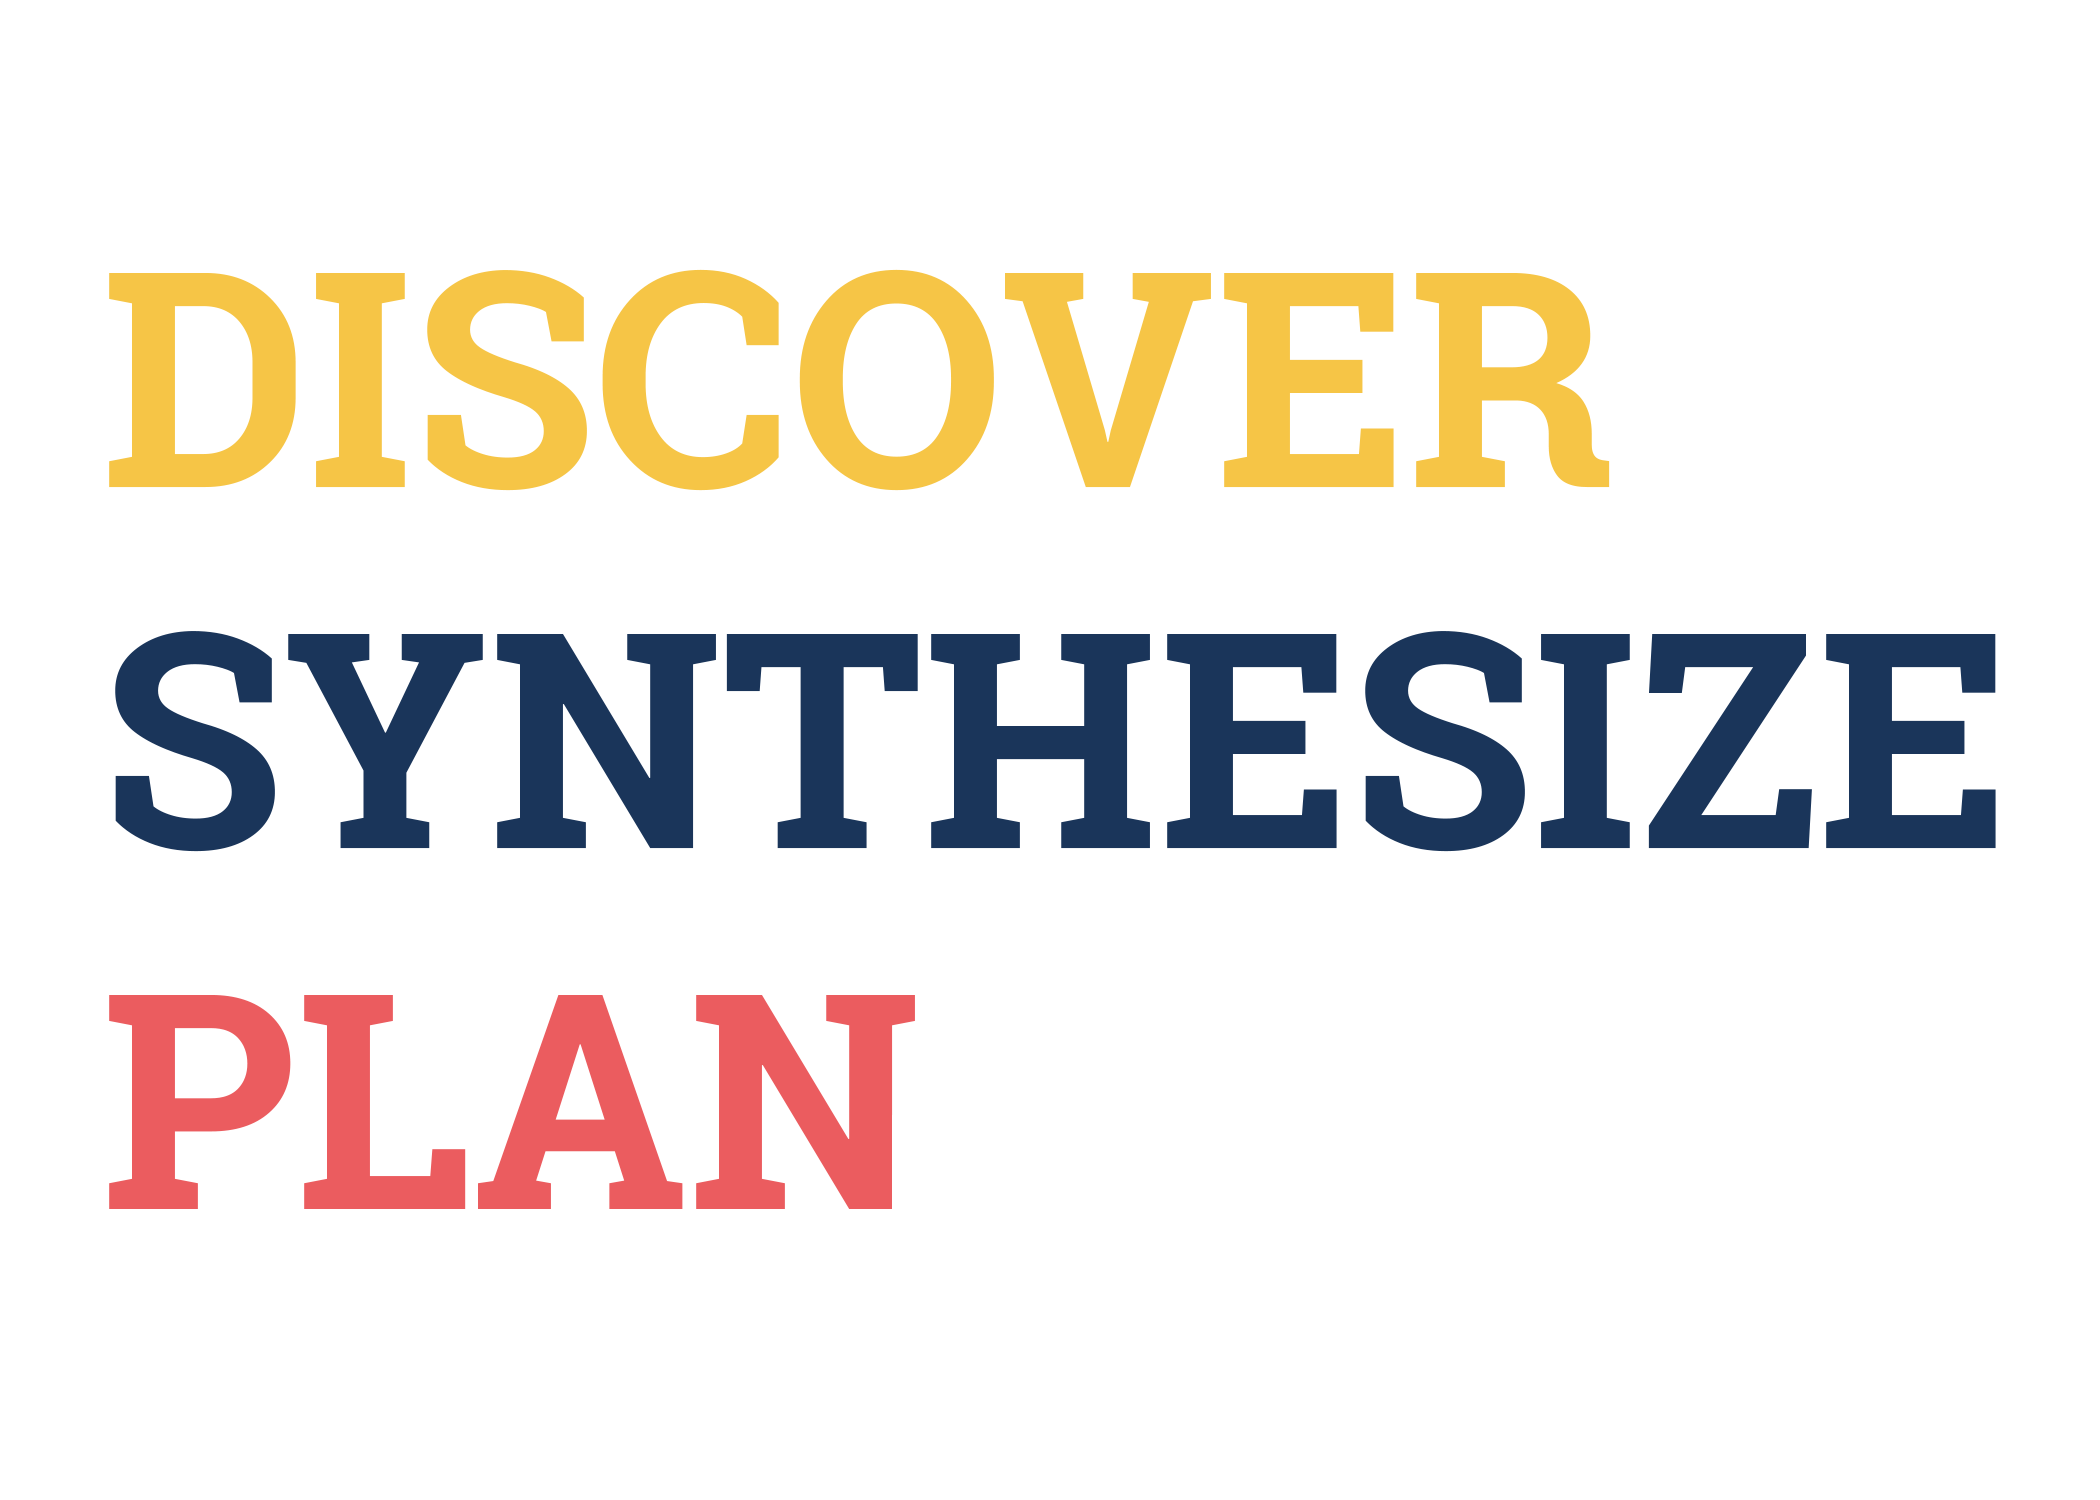 discover synthesize plan.png